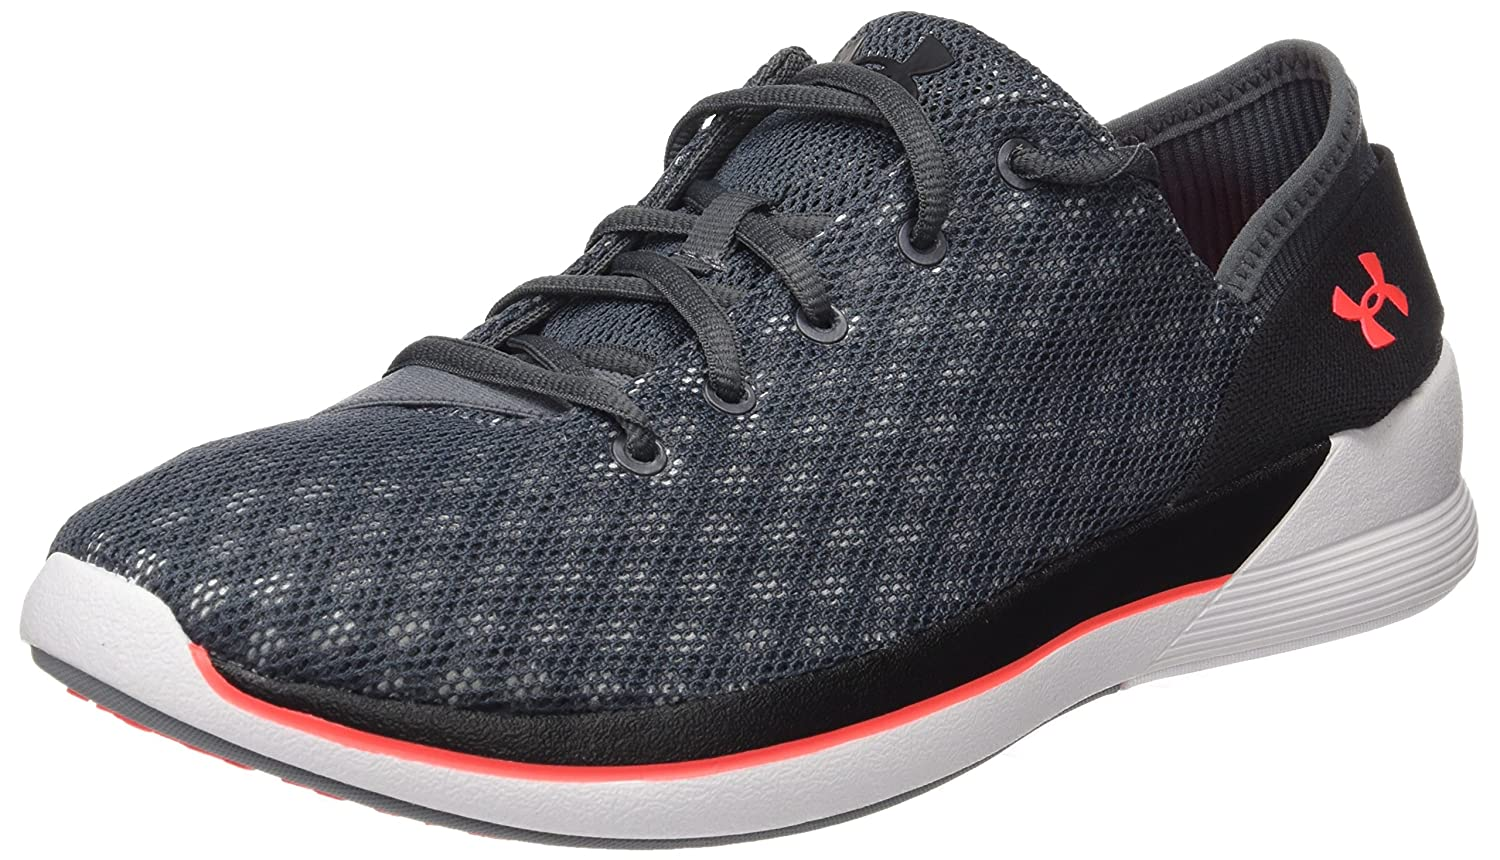 Under Armour Women's Rotation Cross-Trainer Shoe B01MQW61SC 9 M US|Rhino Gray (076)/Black